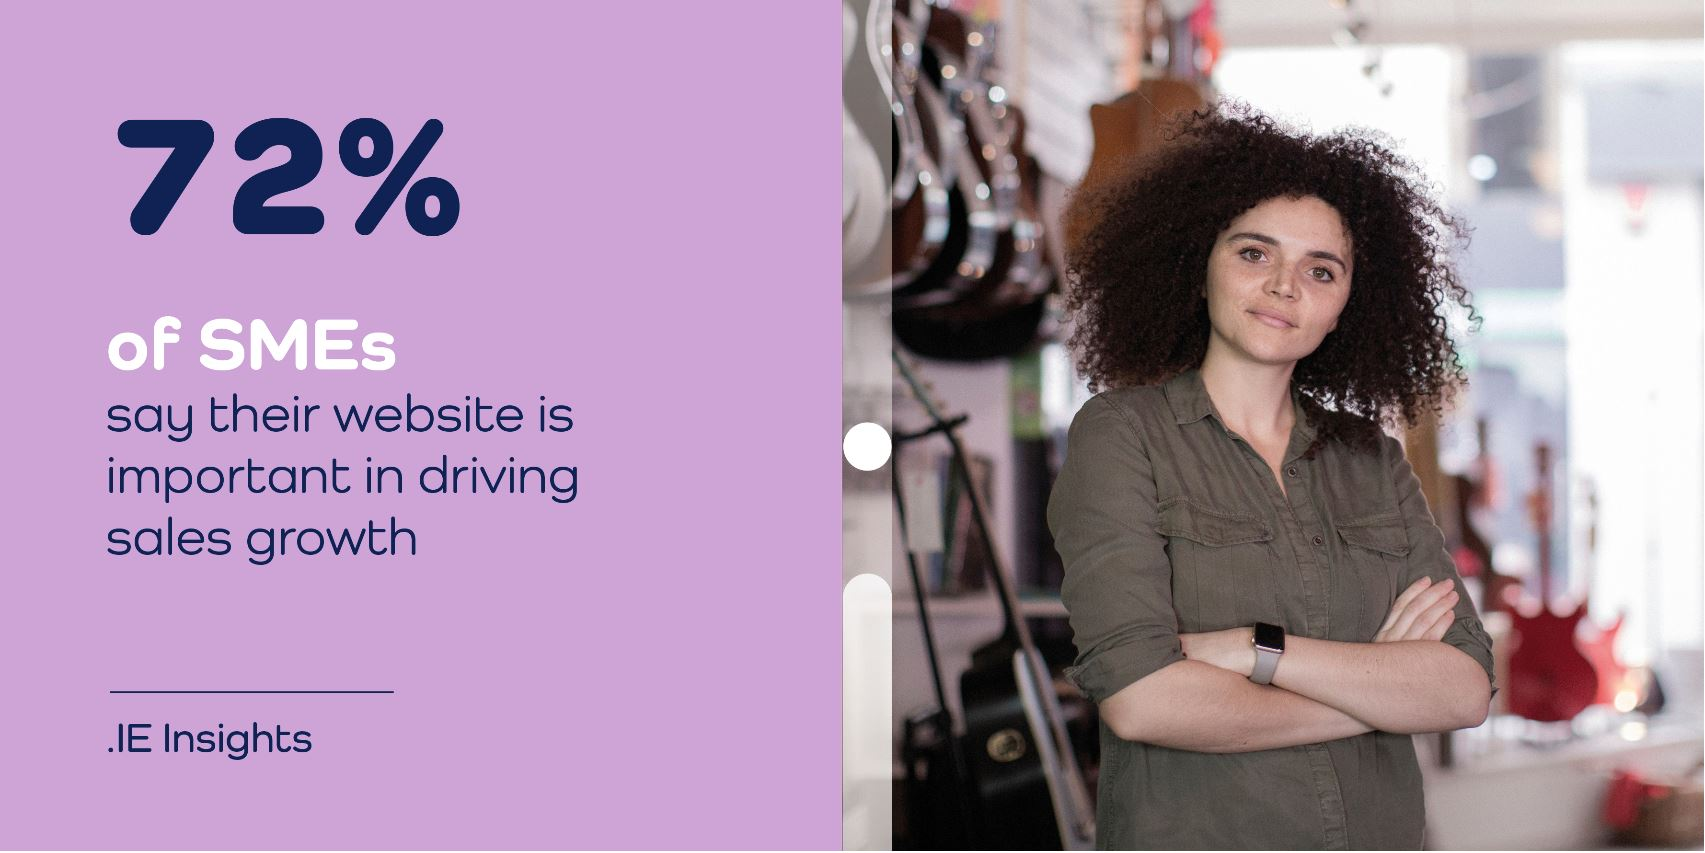 72% of SMEs say their website is important in driving sales growth/ using your .ie/It's crucial that your brand is online